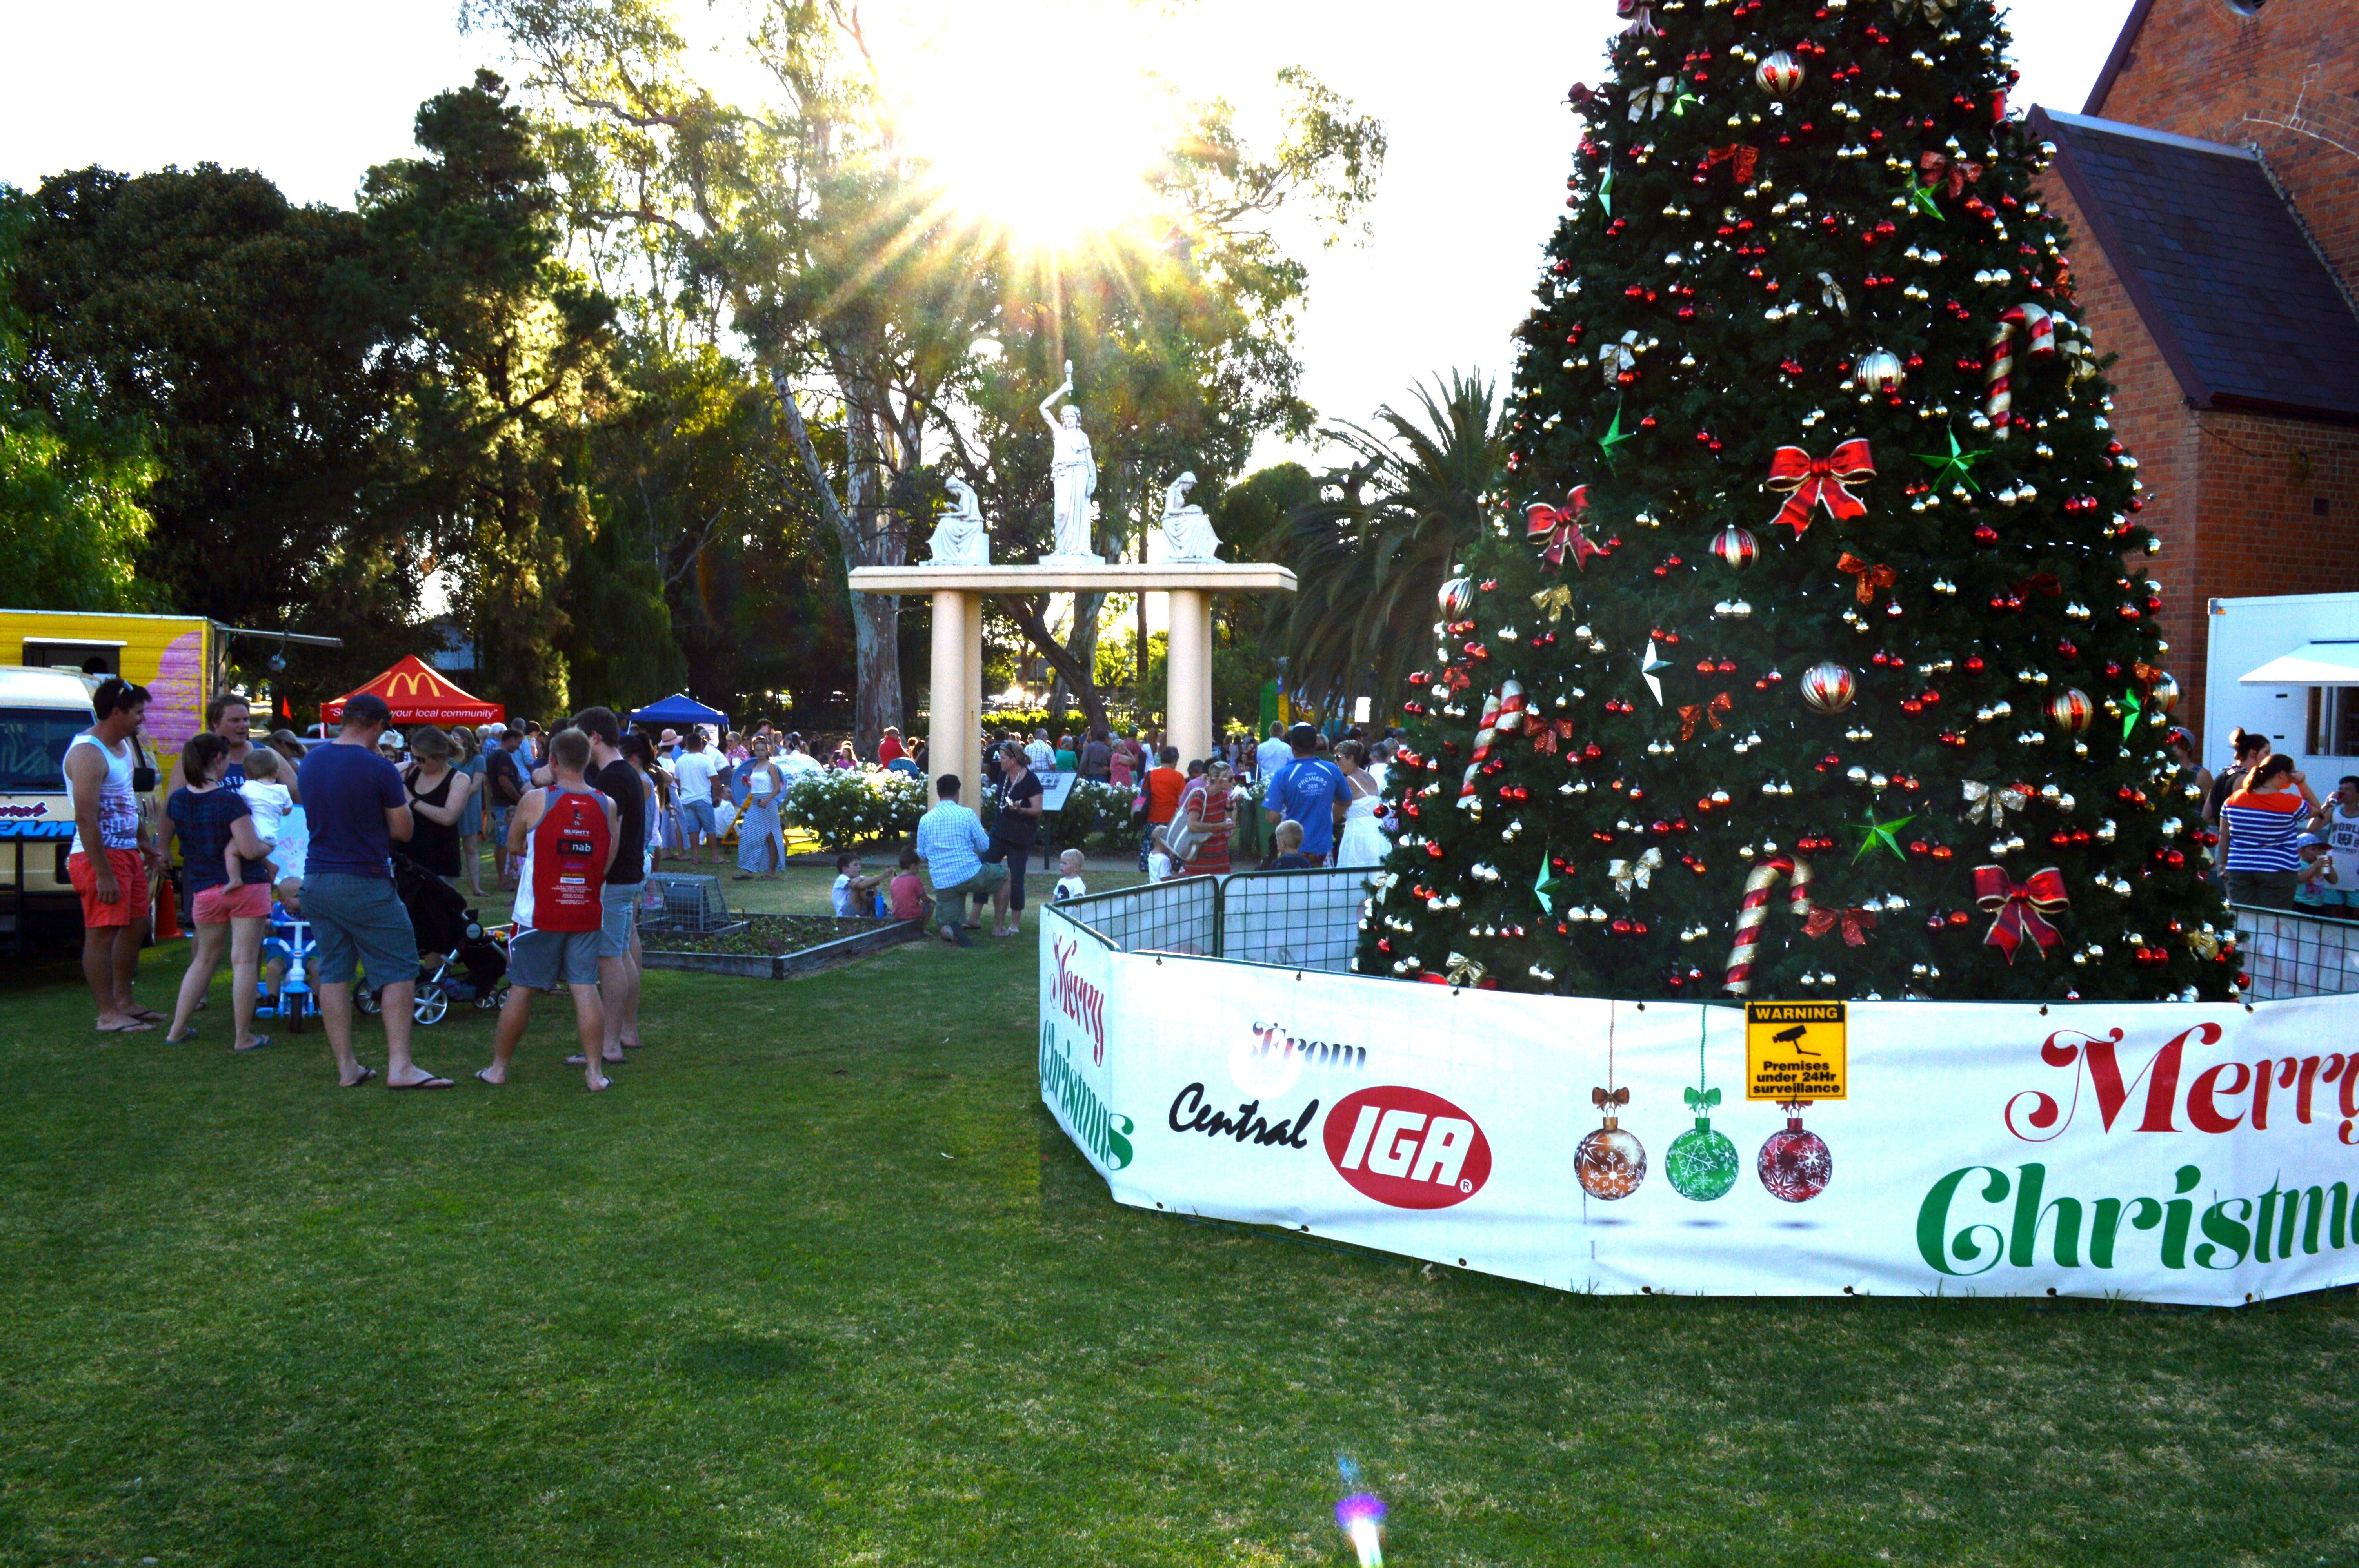 Community Christmas Party and Carols by Candlelight - Whitsundays Tourism